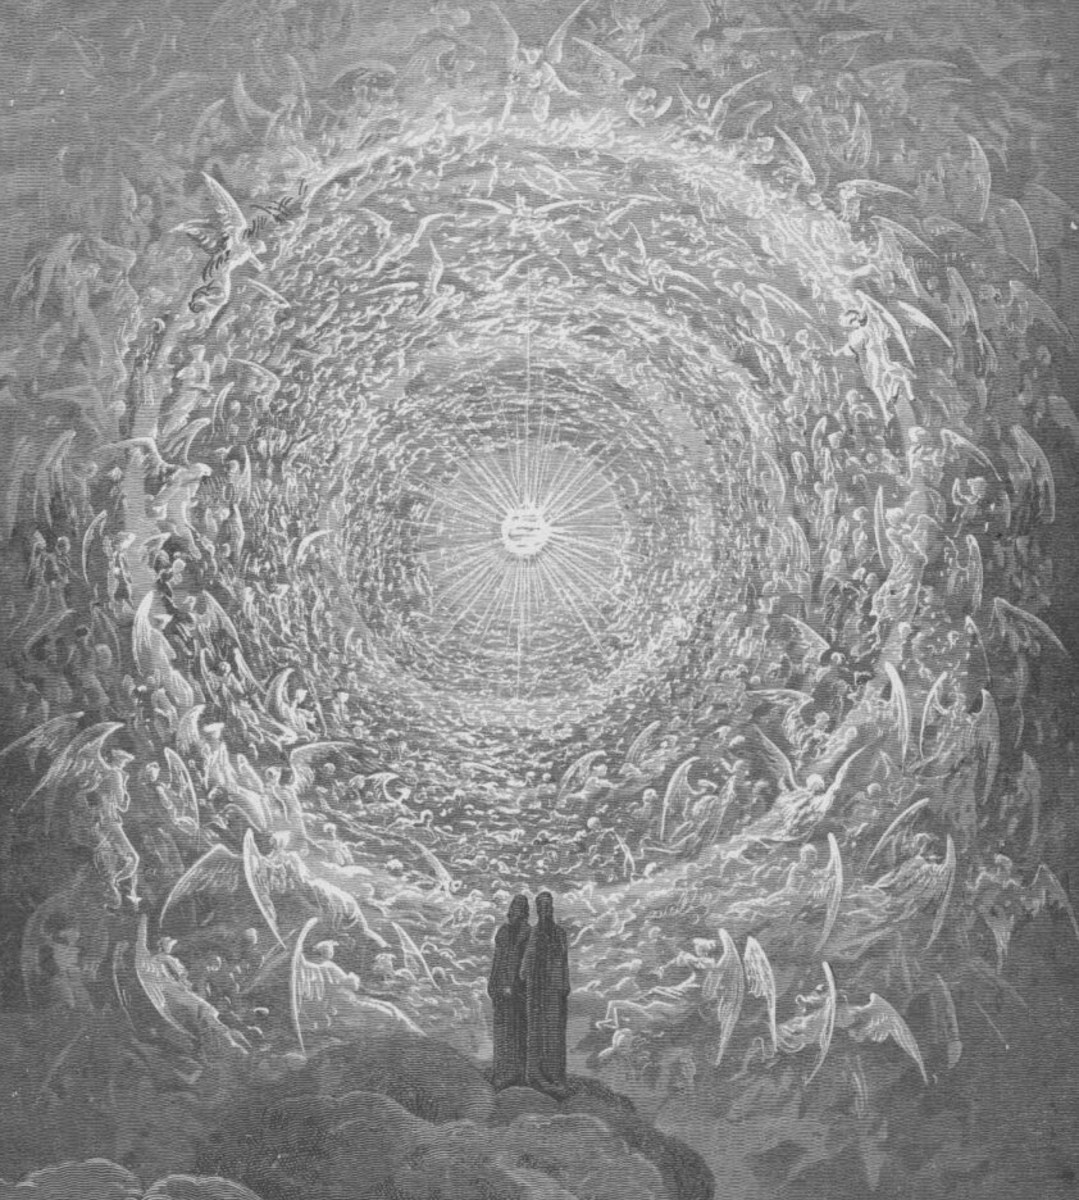 Dante stands in the presence of God, depicted as a shining white light at the end of a tunnel lined with adoring angels.